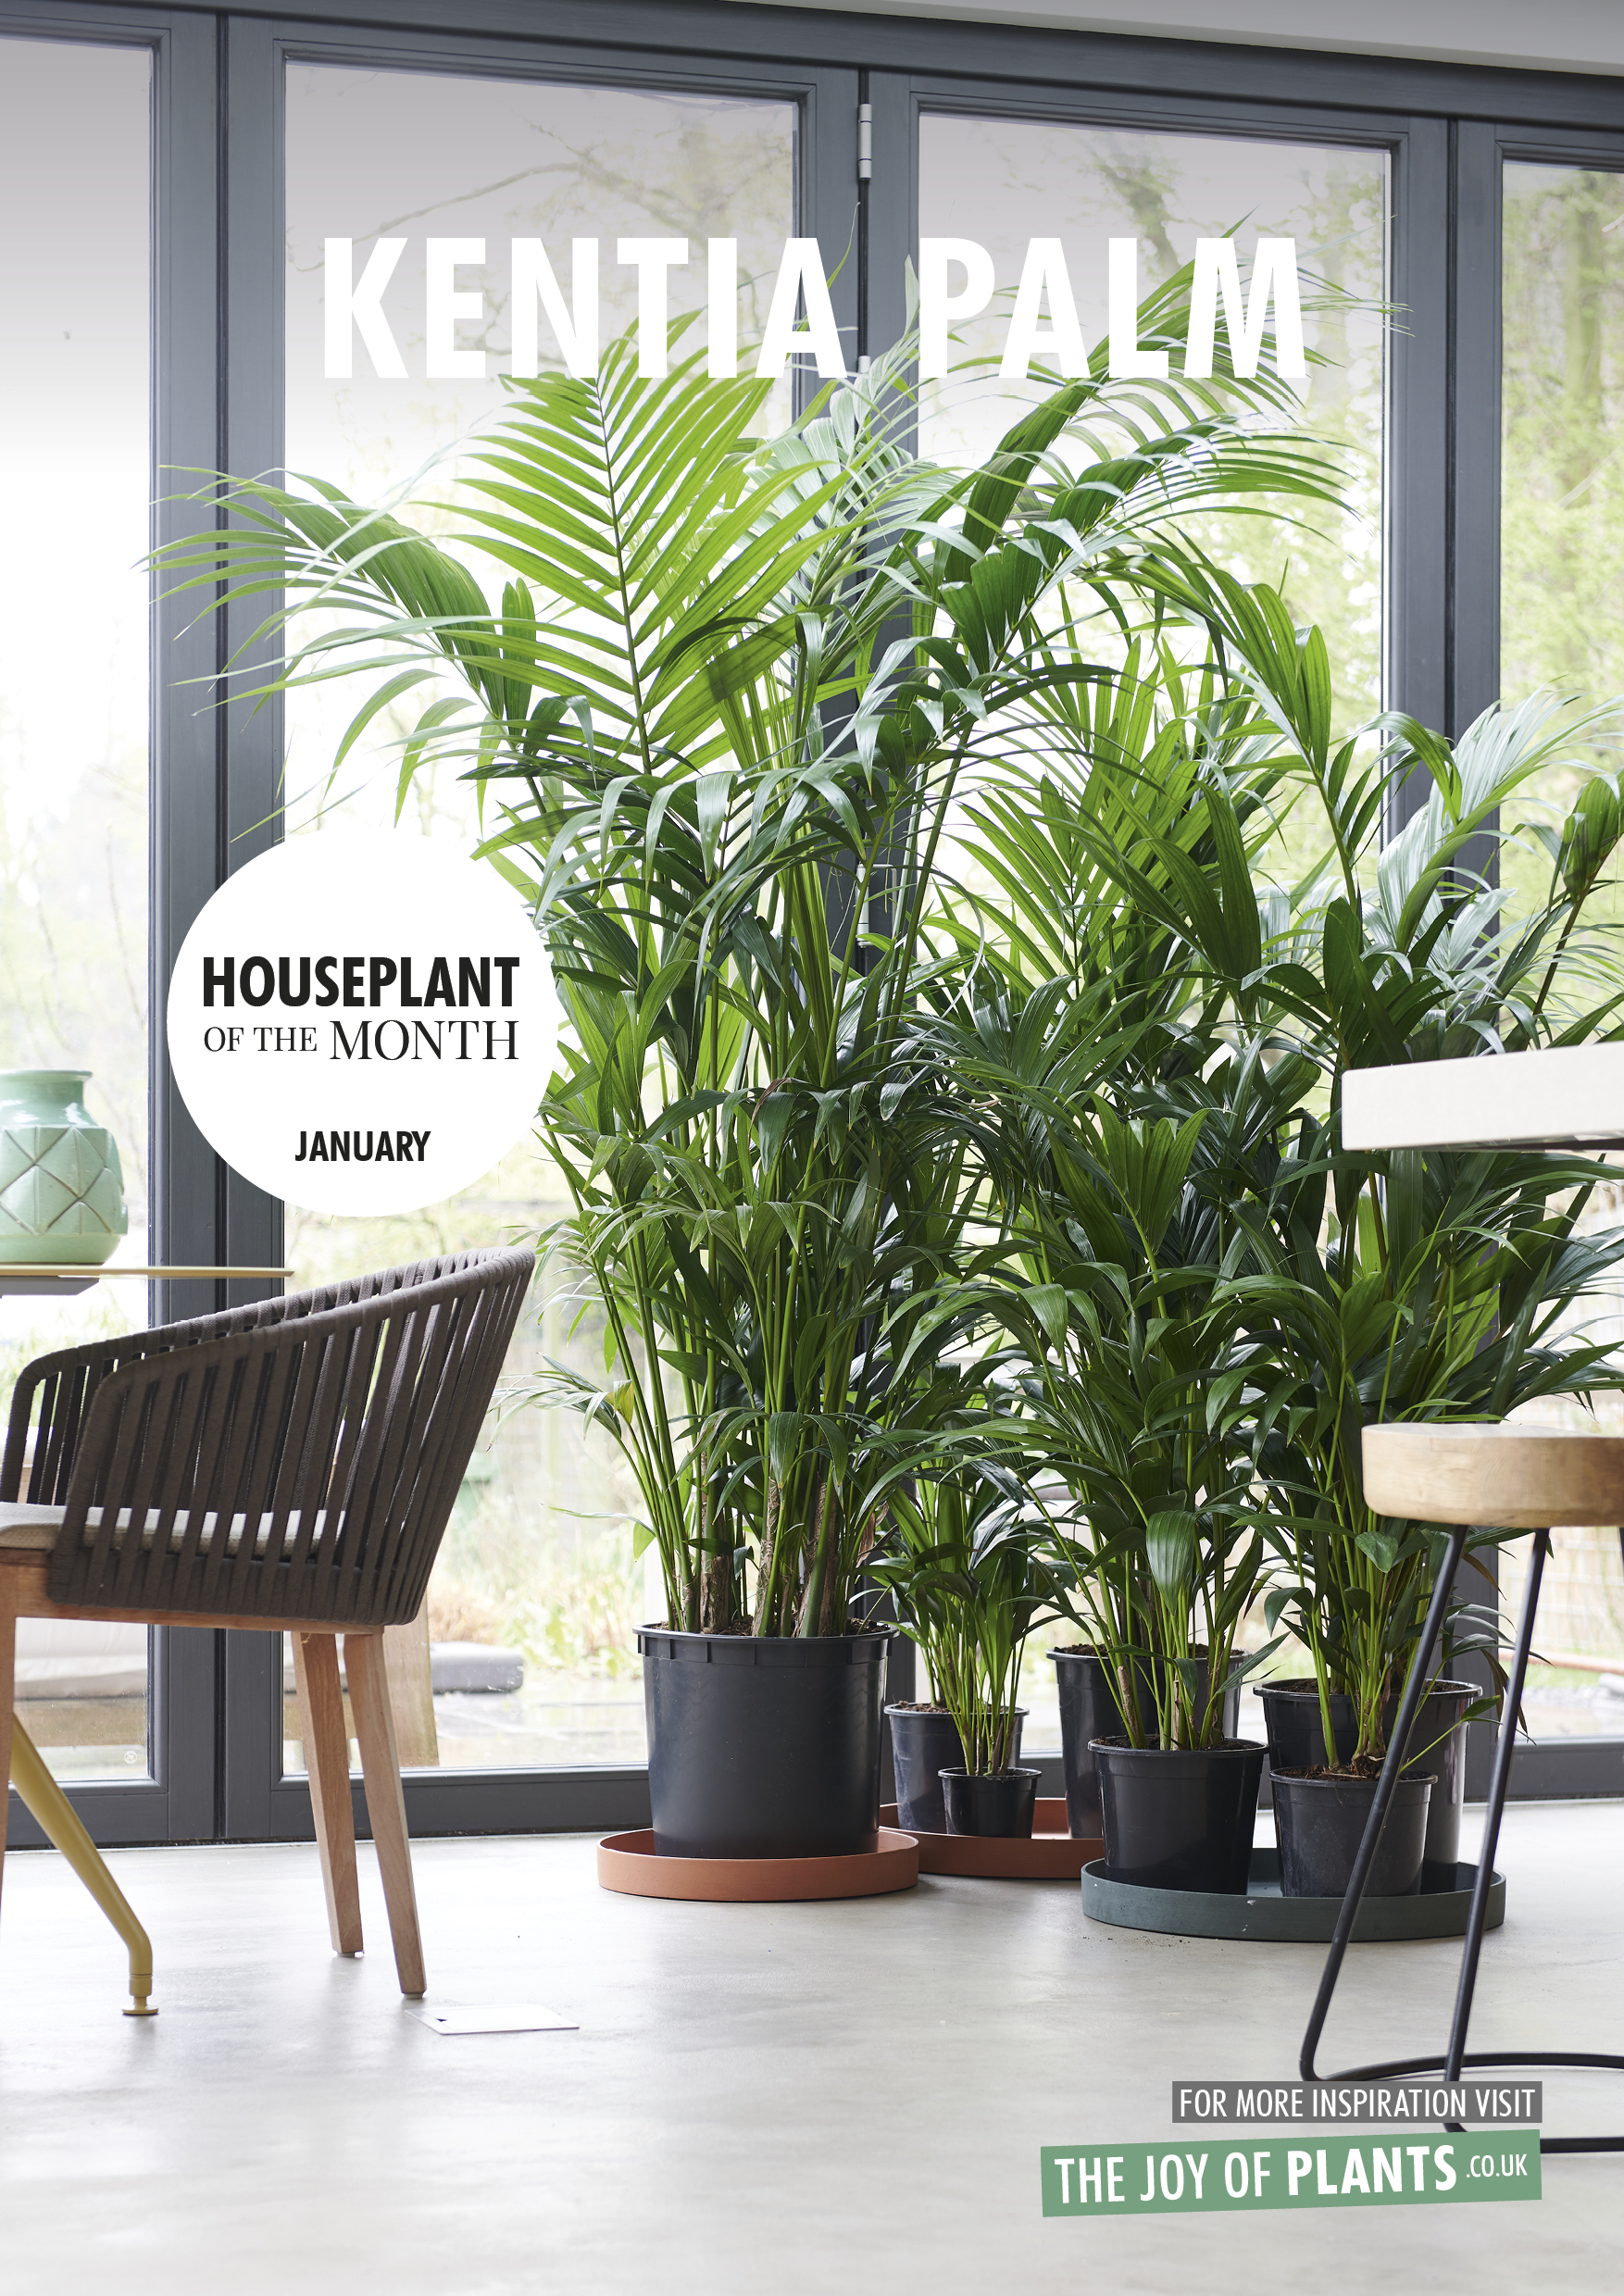 Topfpflanze Palme January 2019 Kentia Palm Houseplant Of The Month Flower Council